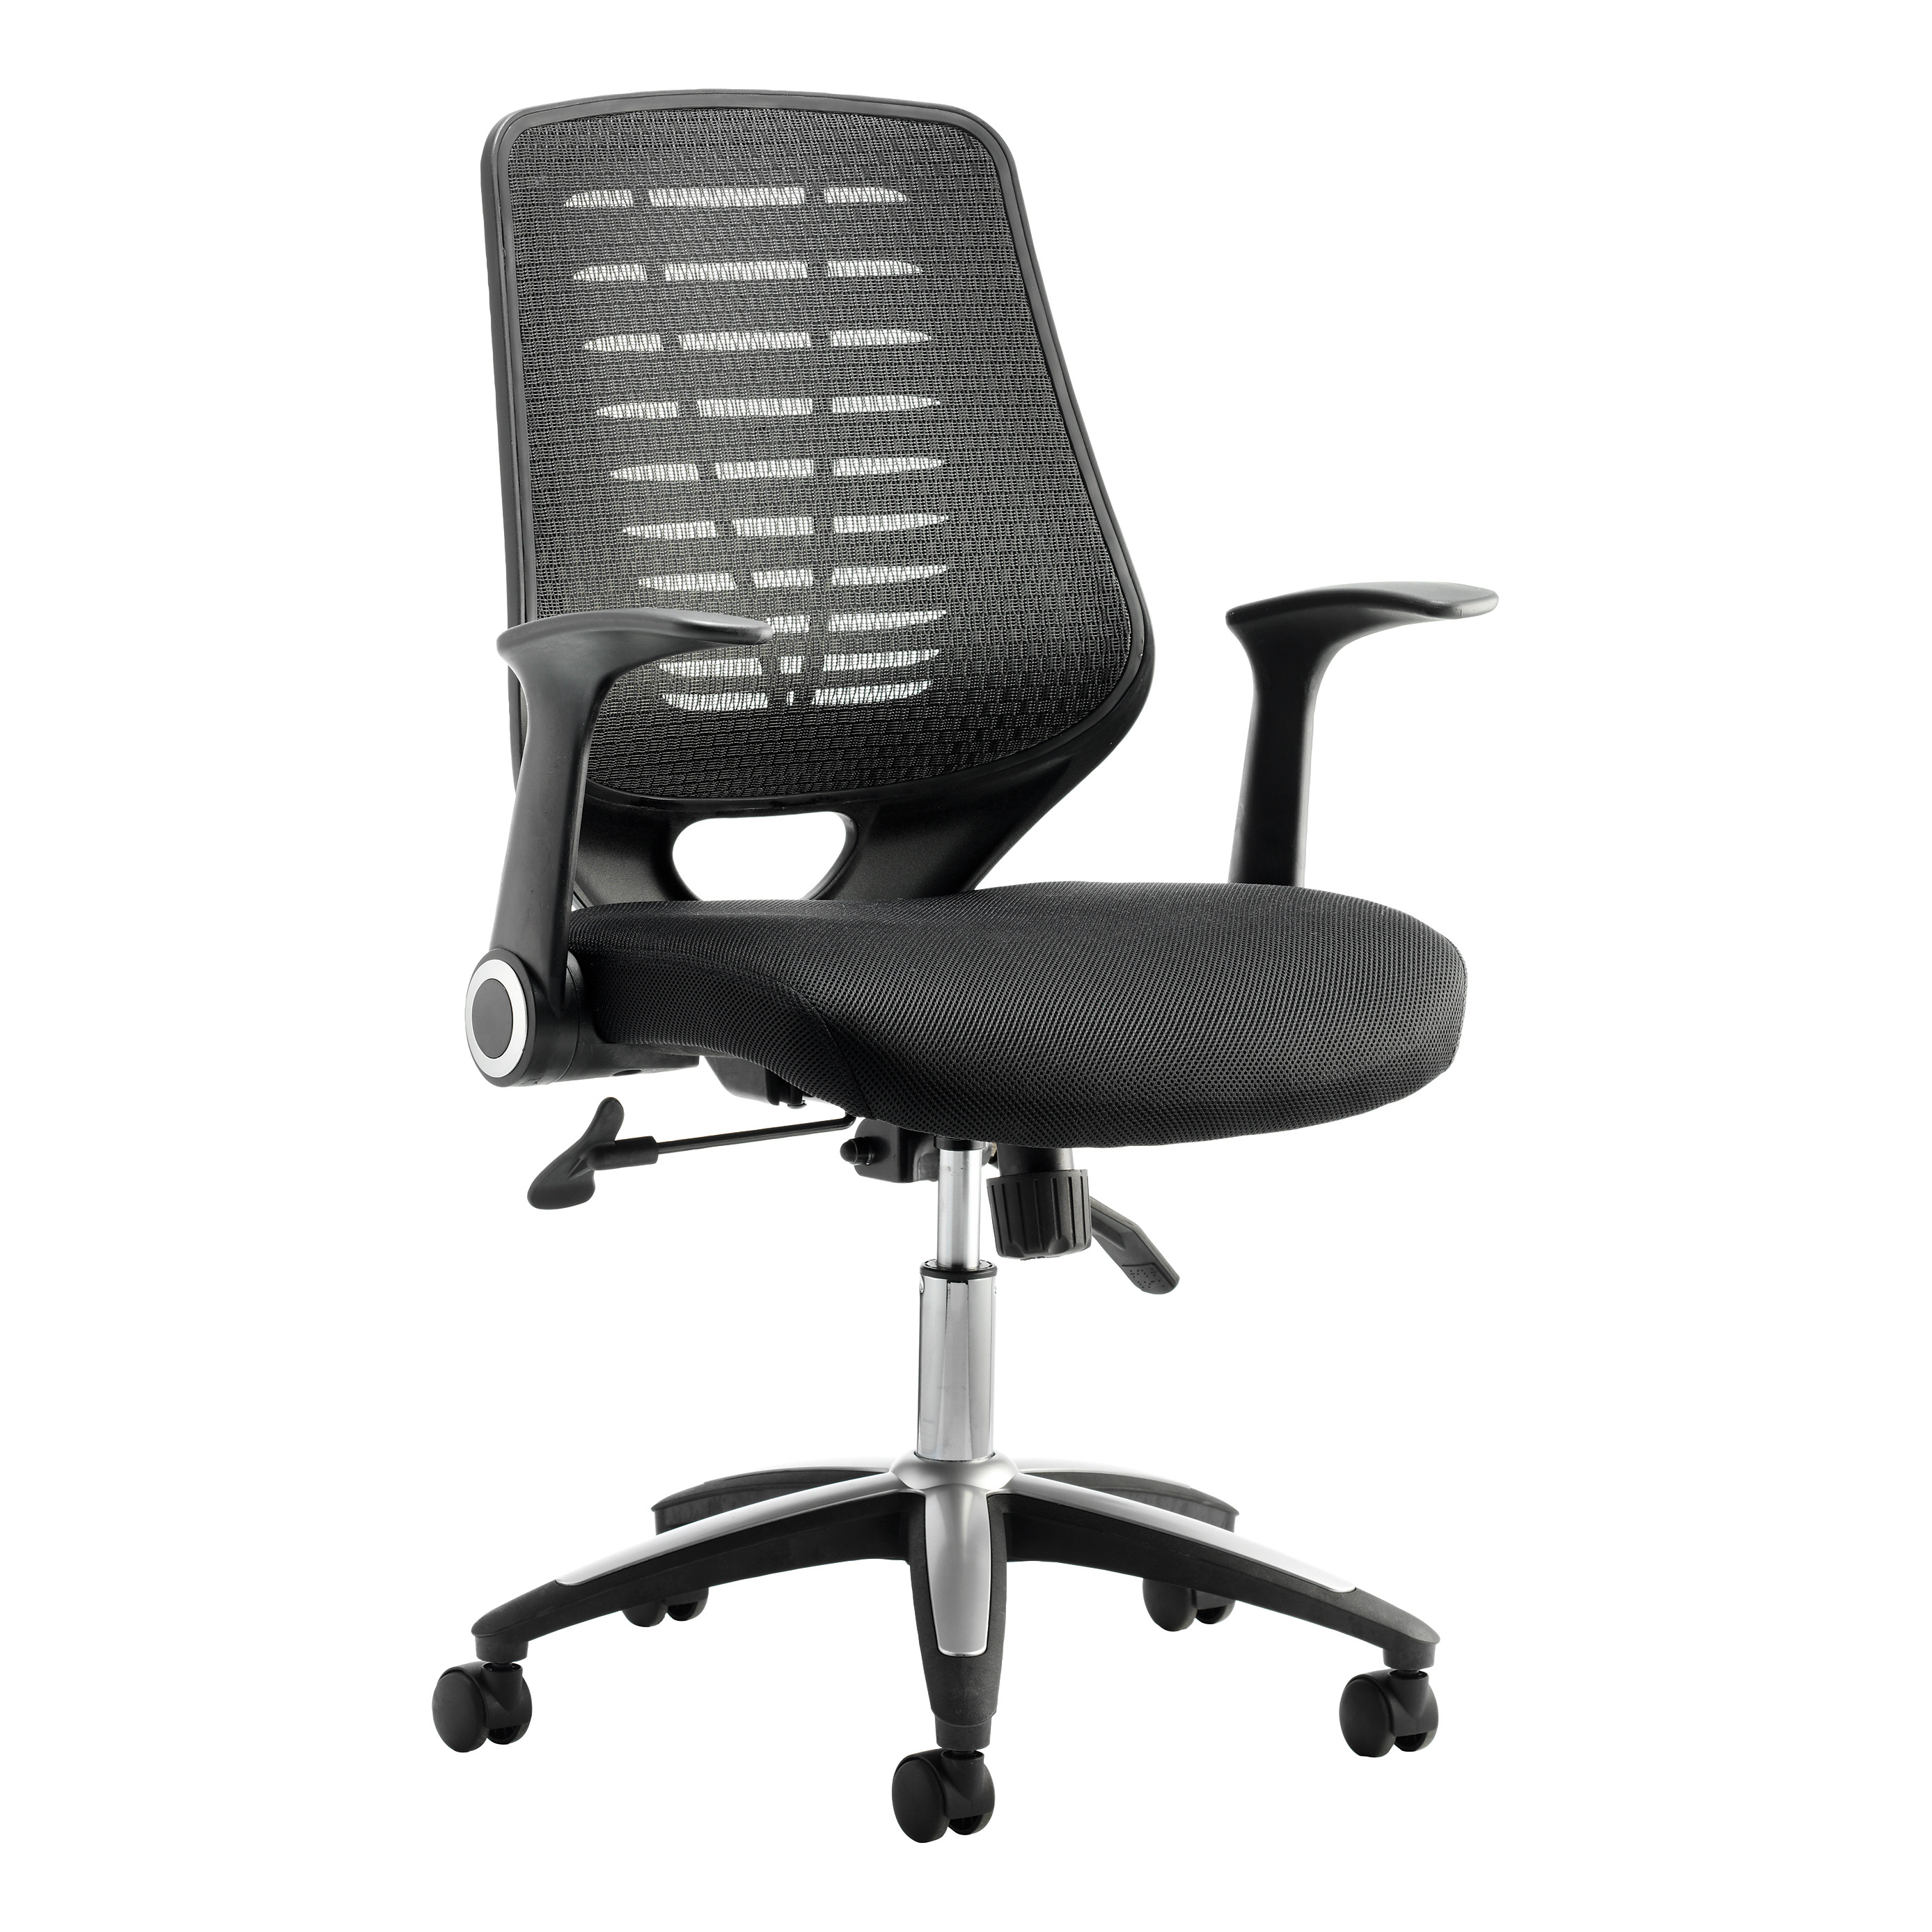 Office Furniture & Workplace Supplies